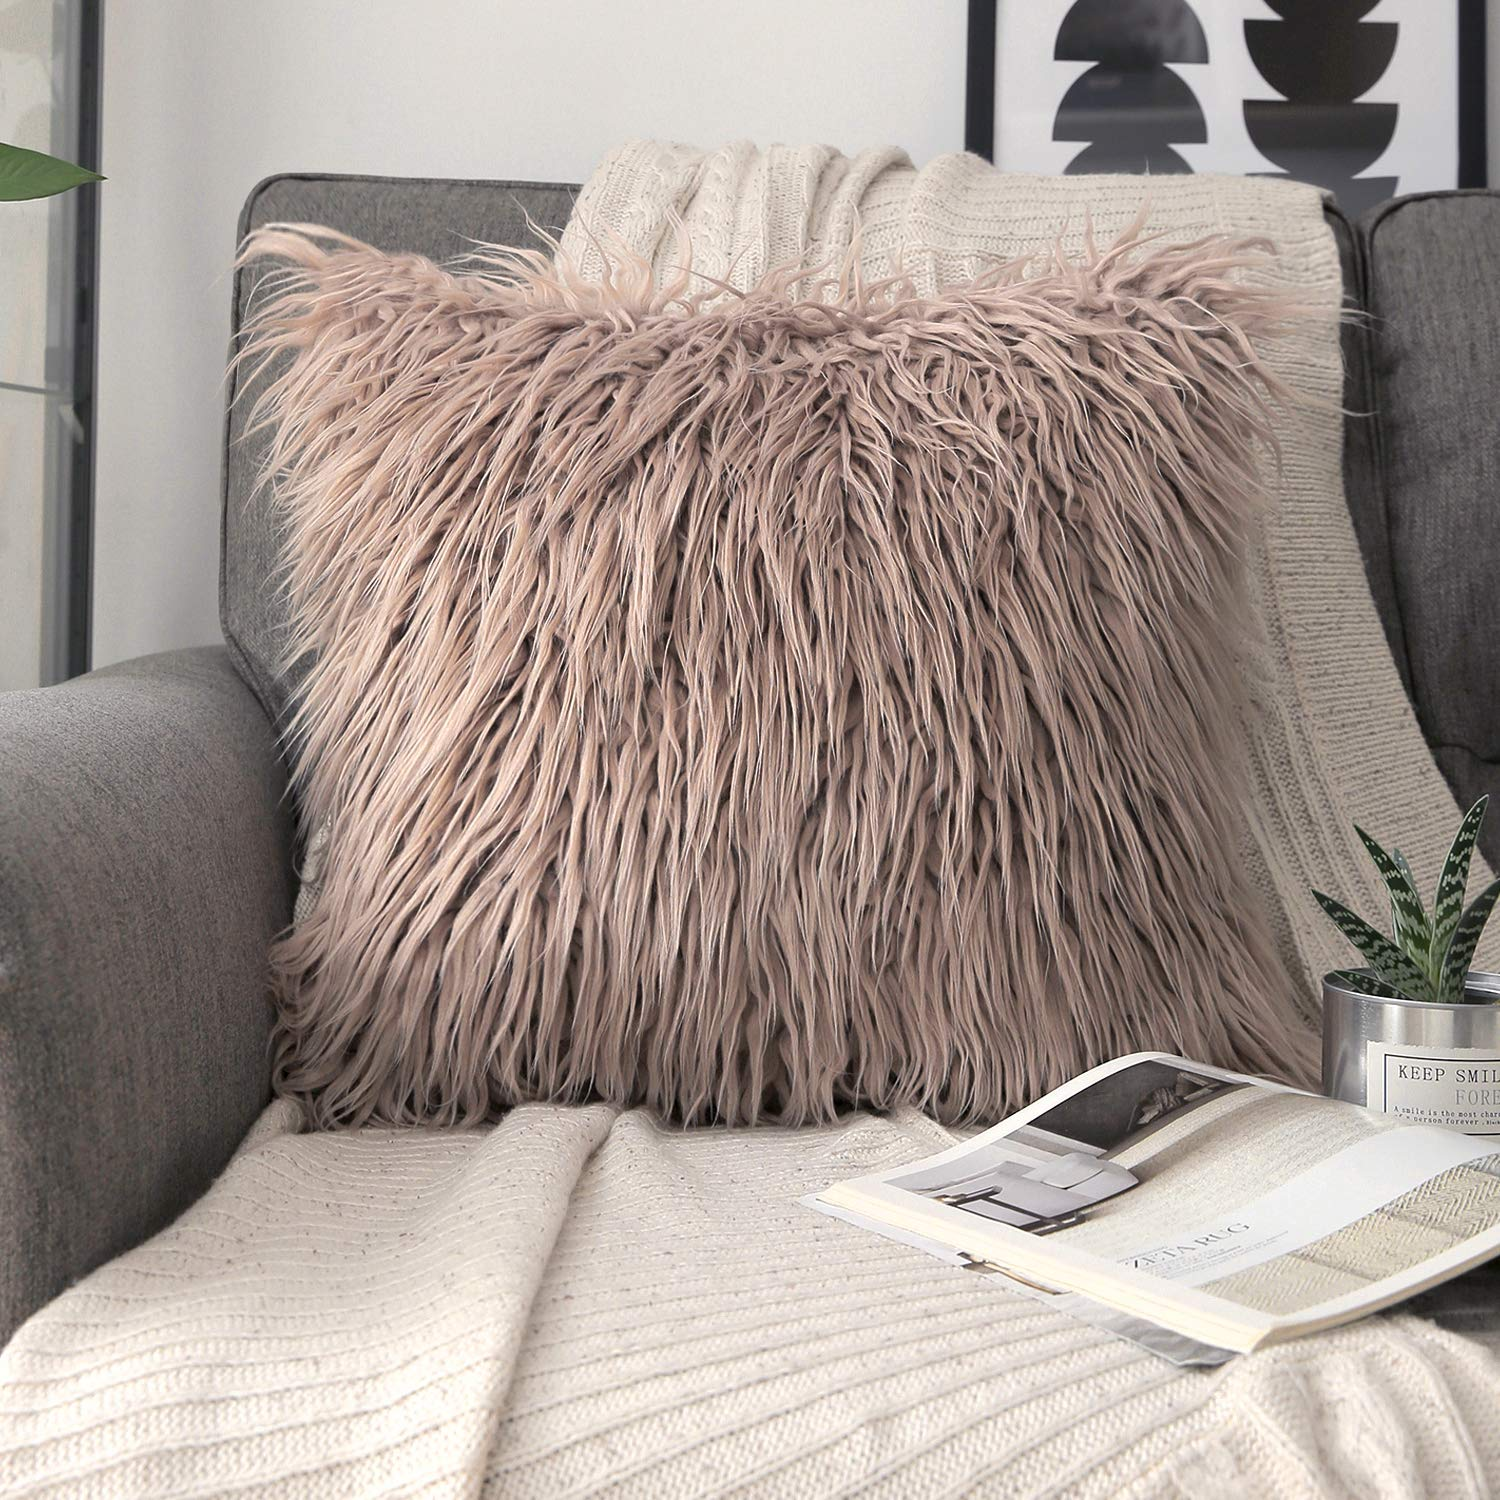 Phantoscope Luxury Series Throw Pillow Covers Faux Fur Mongolian Style Plush Cushion Case for Couch Bed and Chair, Beige 18 x 18 inches 45 x 45 cm